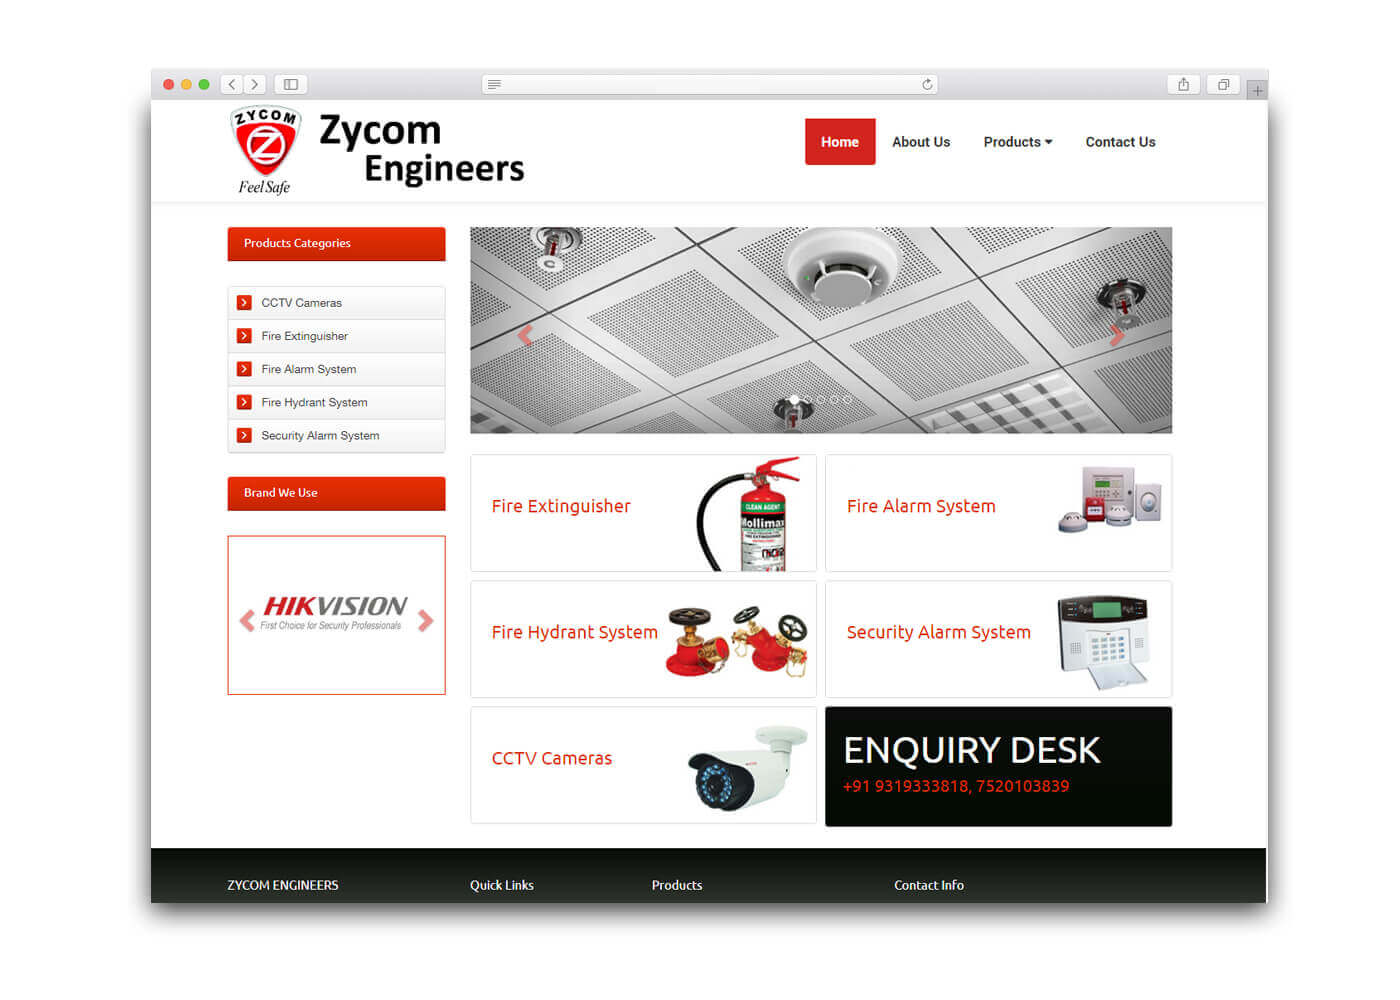 Zycom Engineers